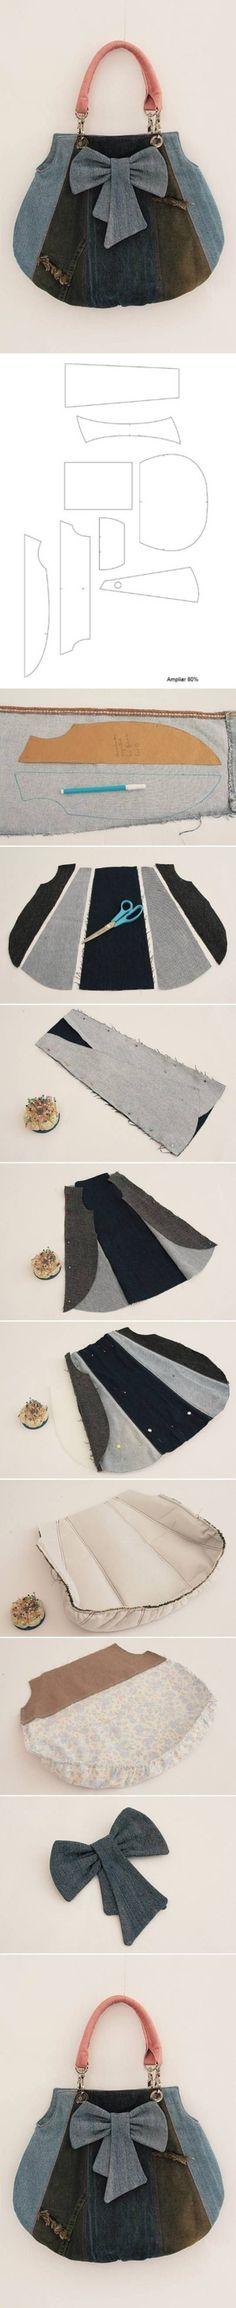 DIY Old Jeans Fashion Bag by Macarena Kreps